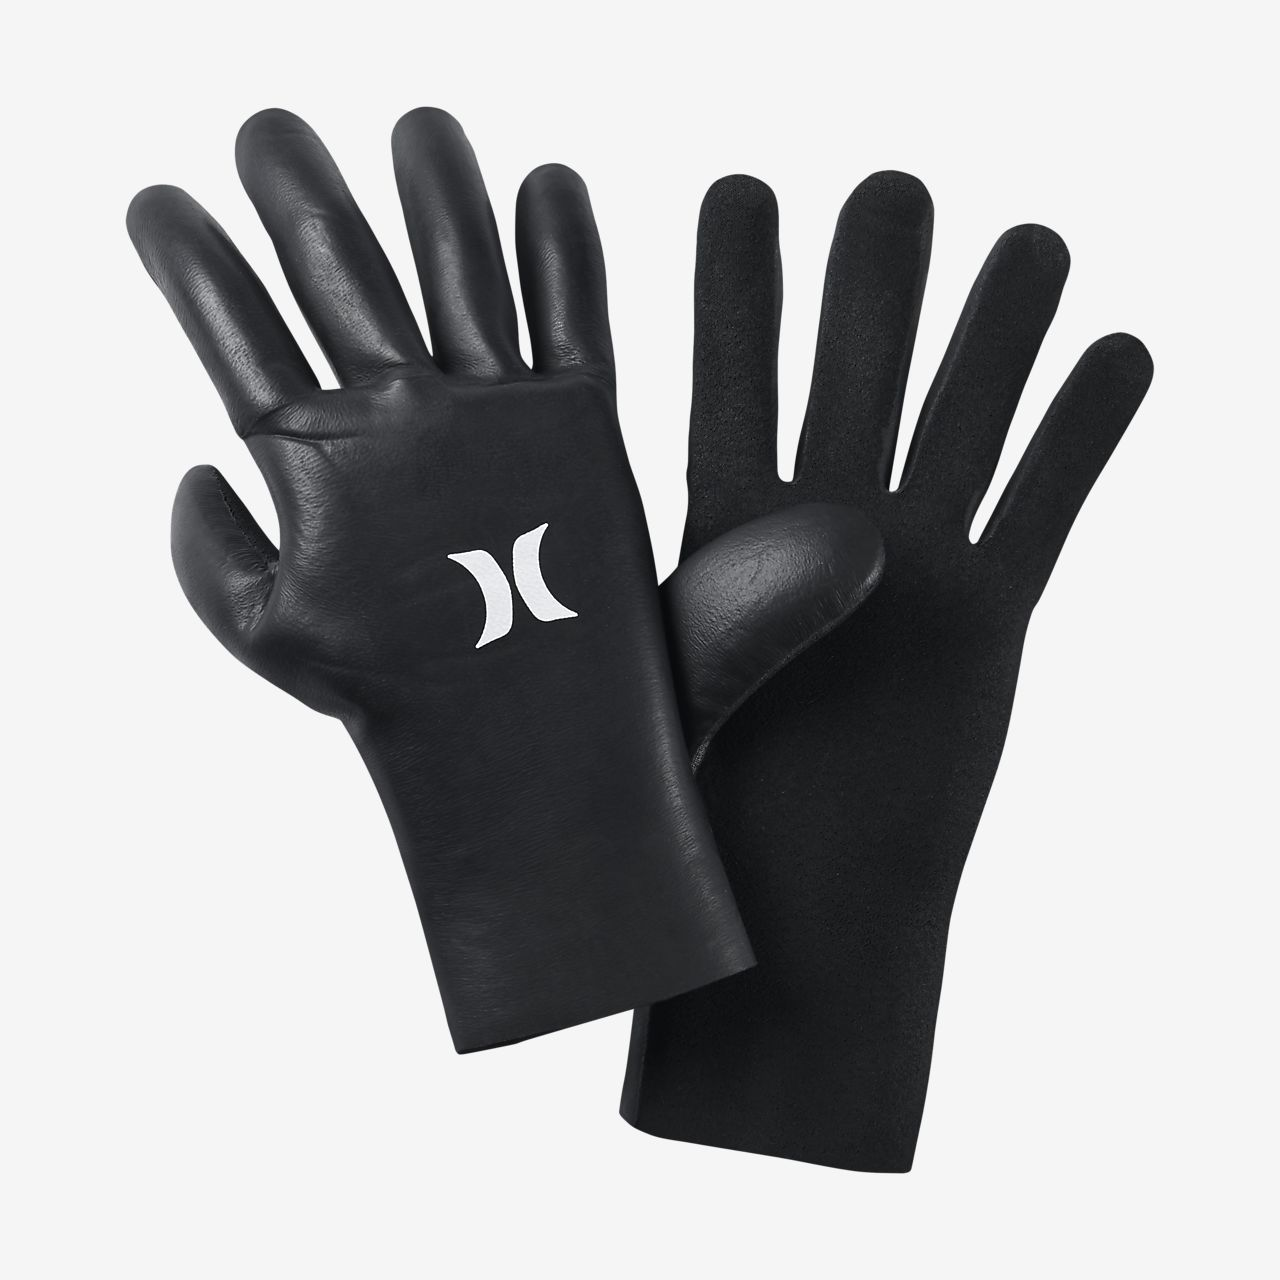 Hurley Advantage Plus 2/2mm Wetsuit Gloves